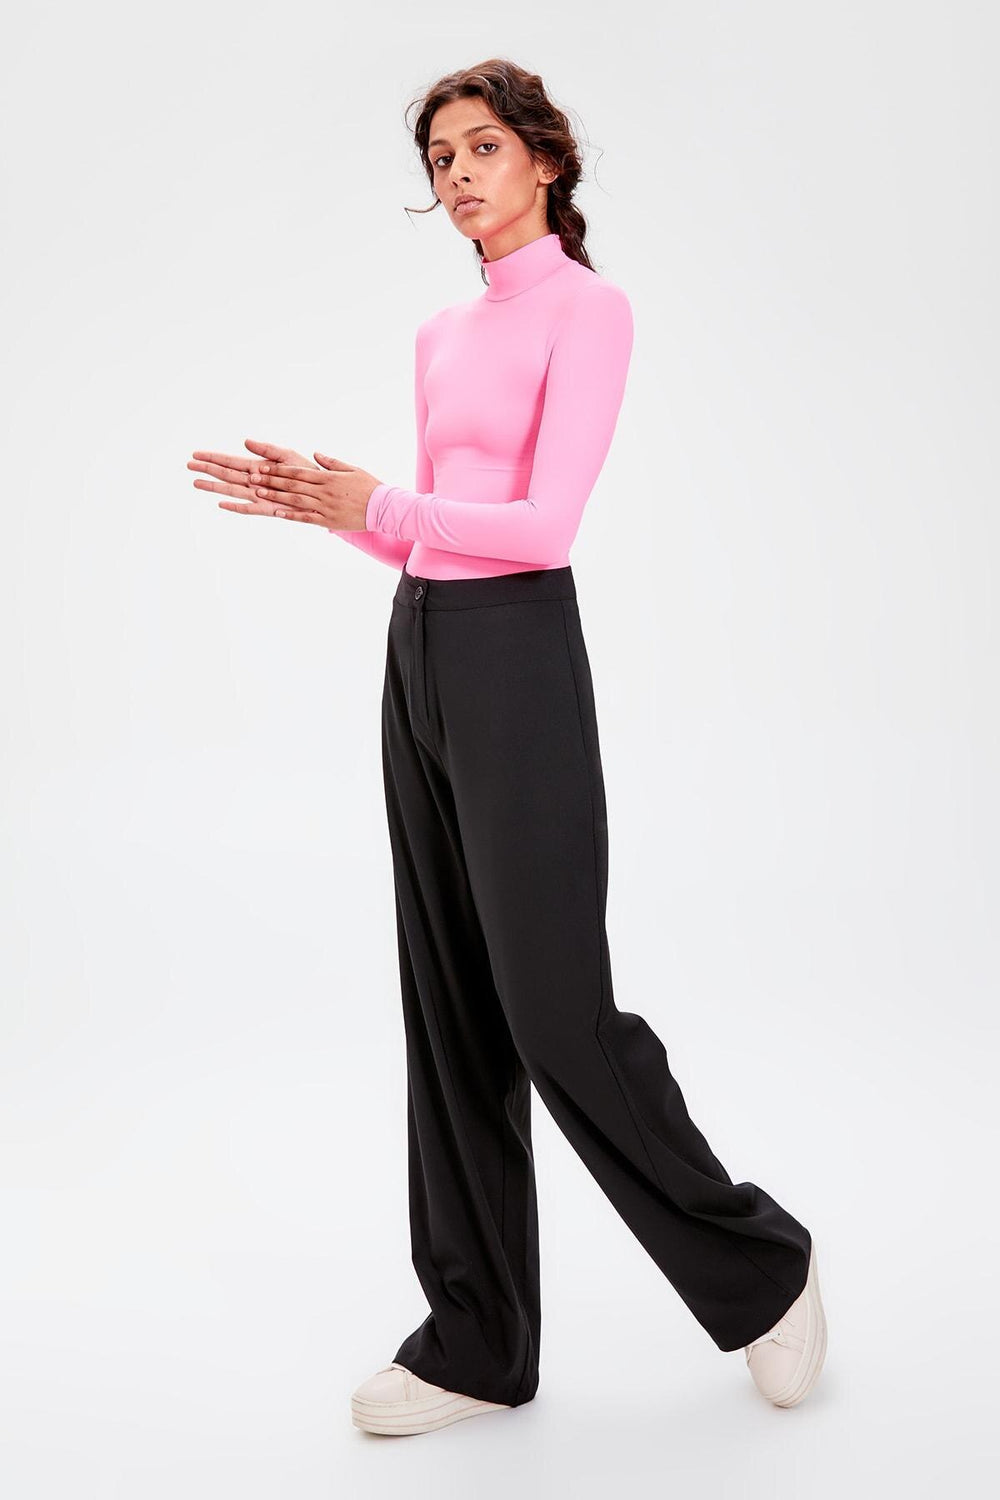 Miss Zut Miss Zut Black Flare Pants Miss Zut &CO